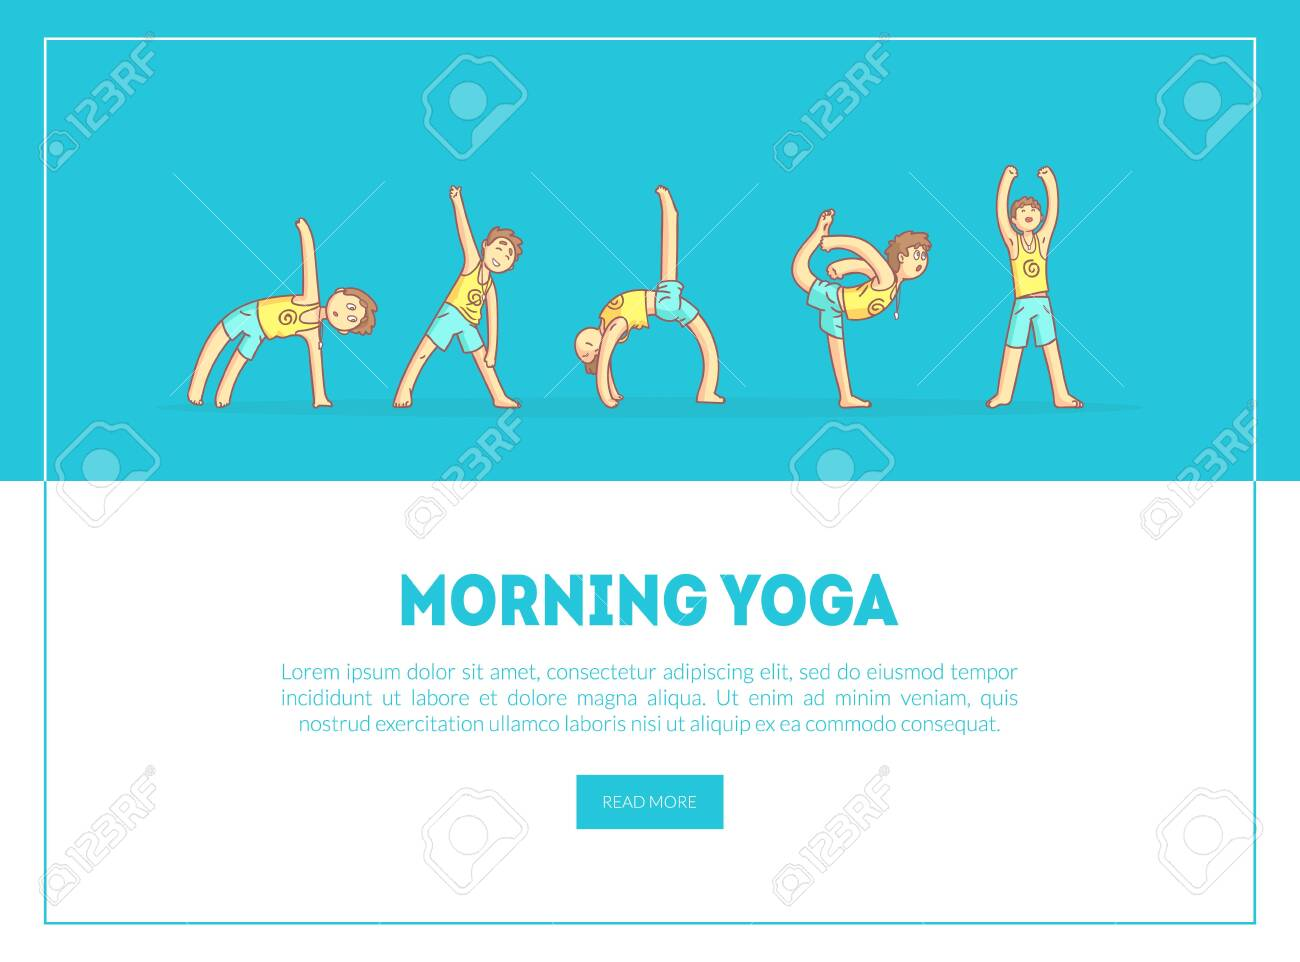 Morning Yoga Banner Landing Page Template Boy Practicing Asana Royalty Free Cliparts Vectors And Stock Illustration Image 125186842